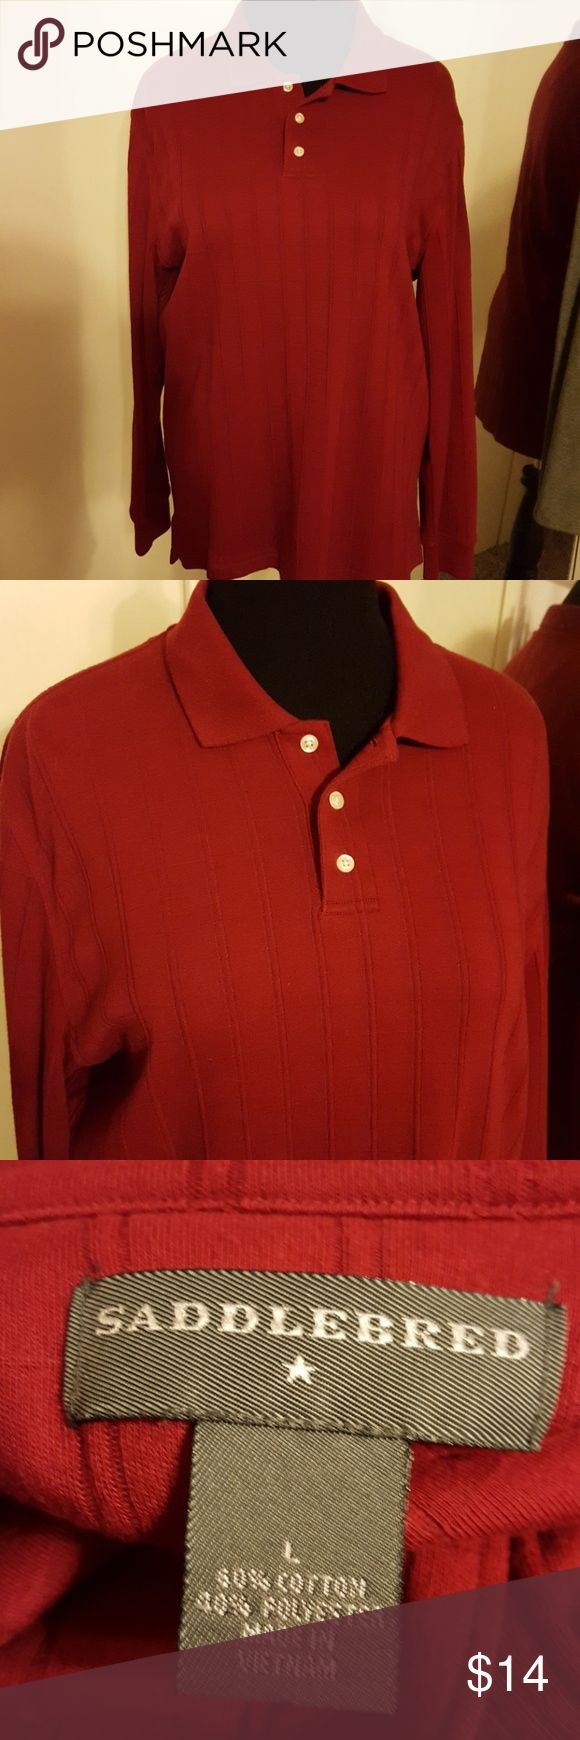 Men's long sleeve polo dark red. Dark red almost Burgundy color with grid texture pattern. Good condition. Saddlebred Shirts Polos